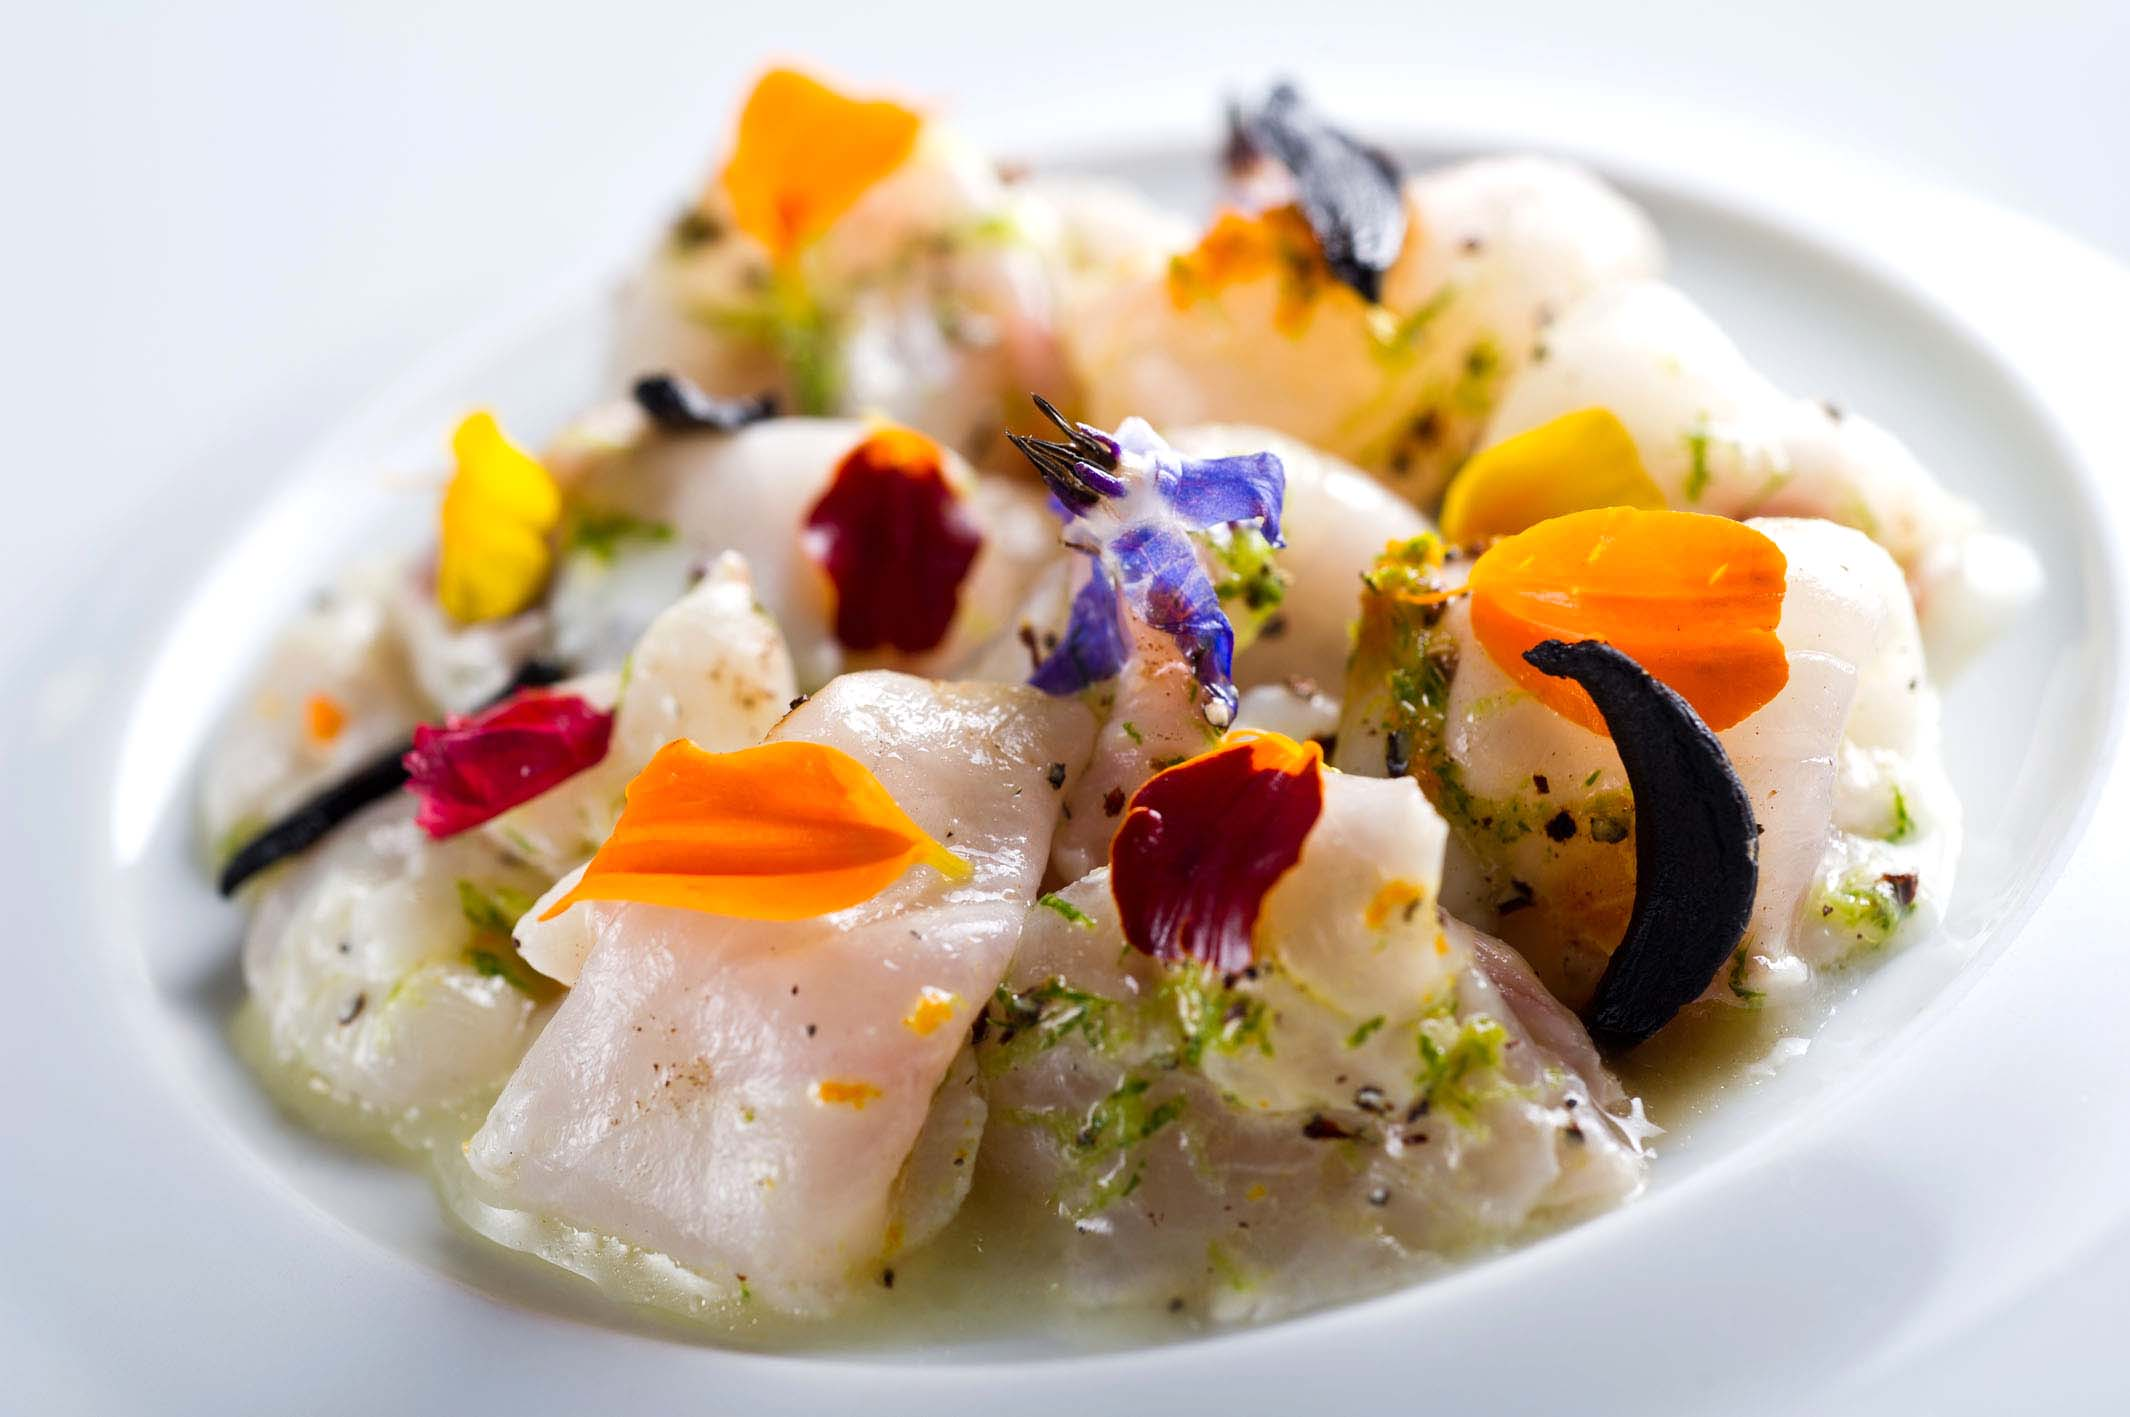 The Haute Cuisine Experience Chef Lionel Levy And His